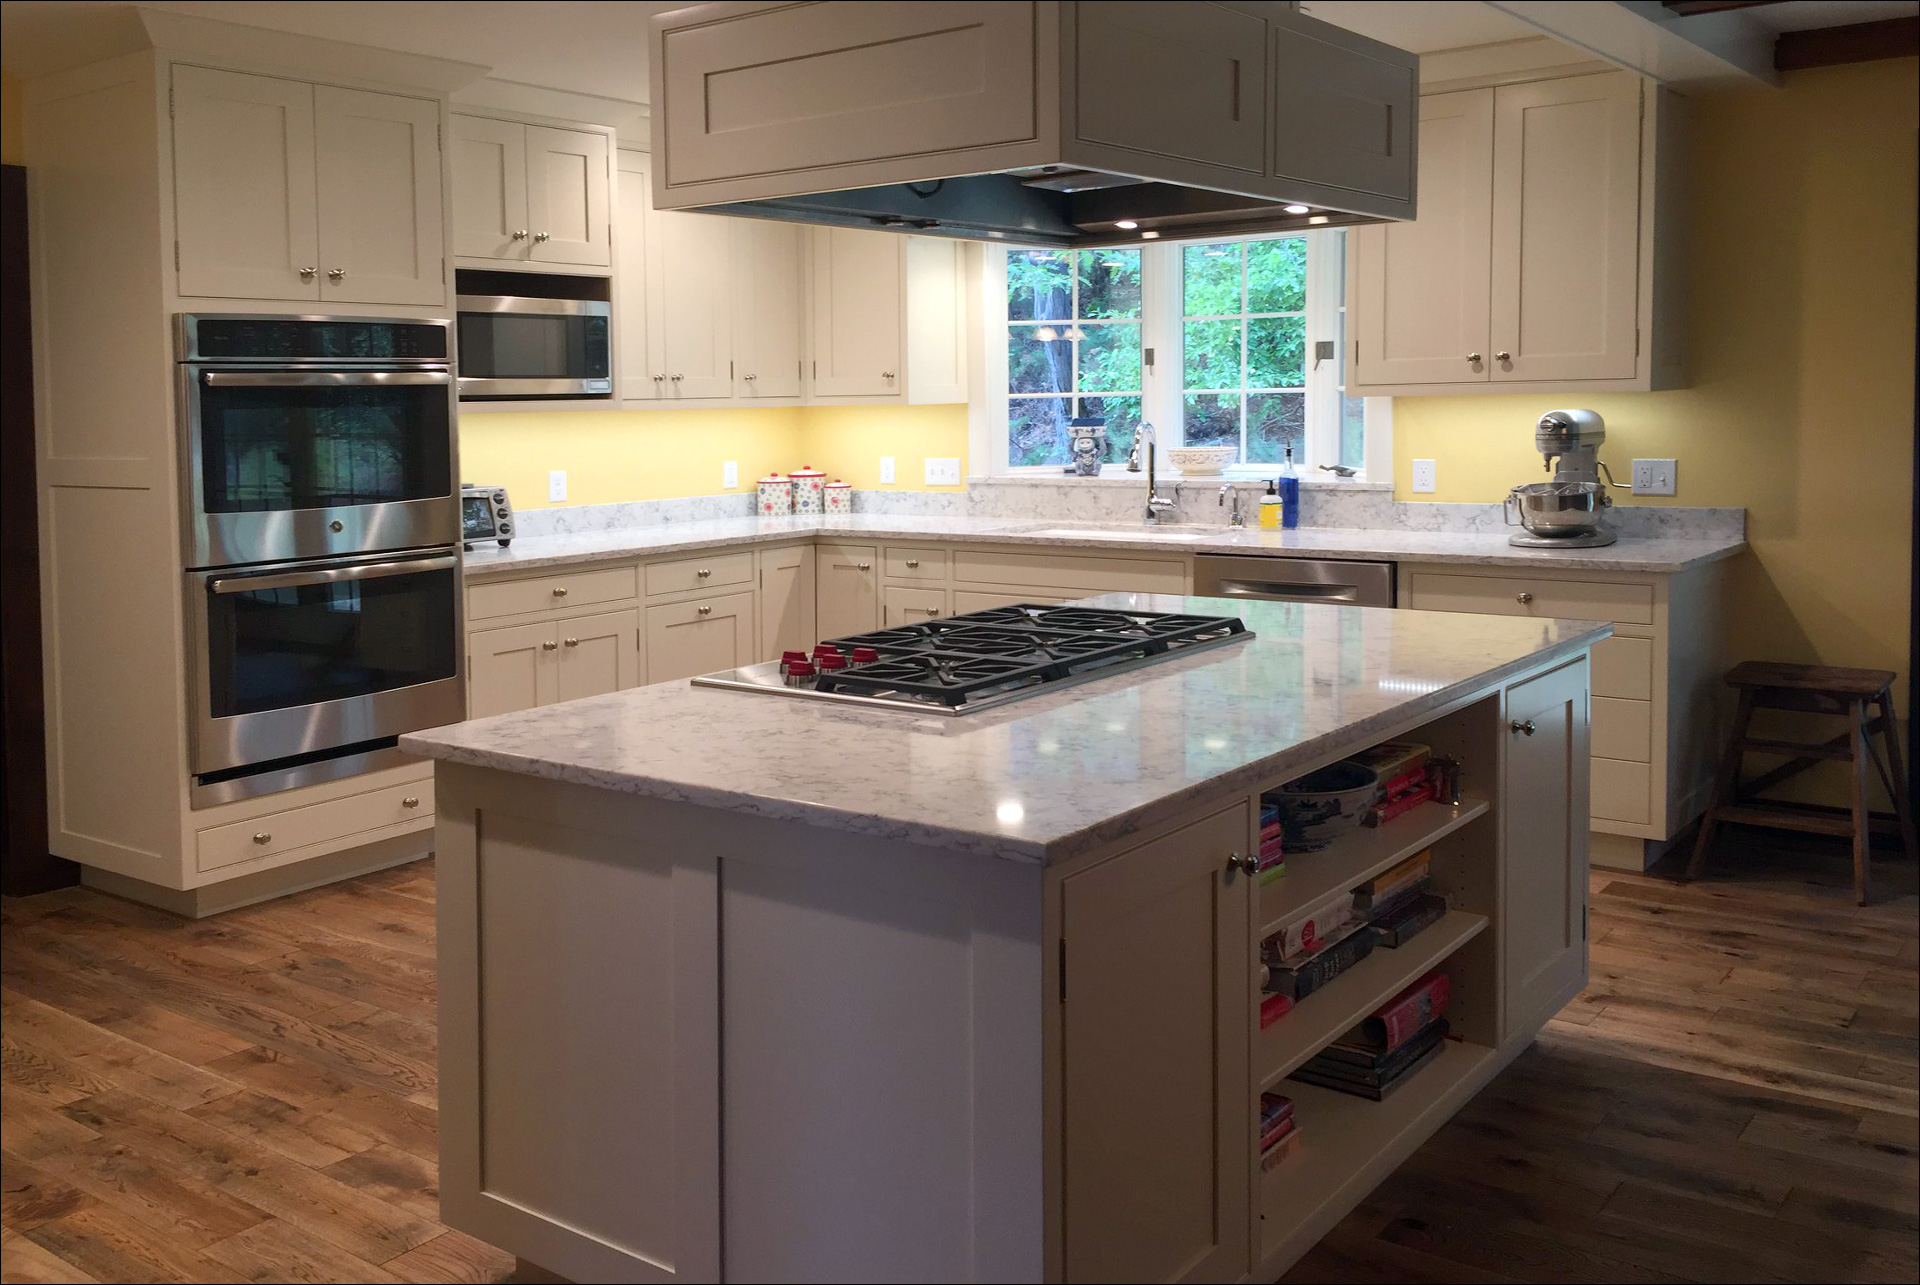 Kitchen Remodel White Cabinets White Marble Countertops outset Windows New Kitchen Appliances 6 Johnson Construction